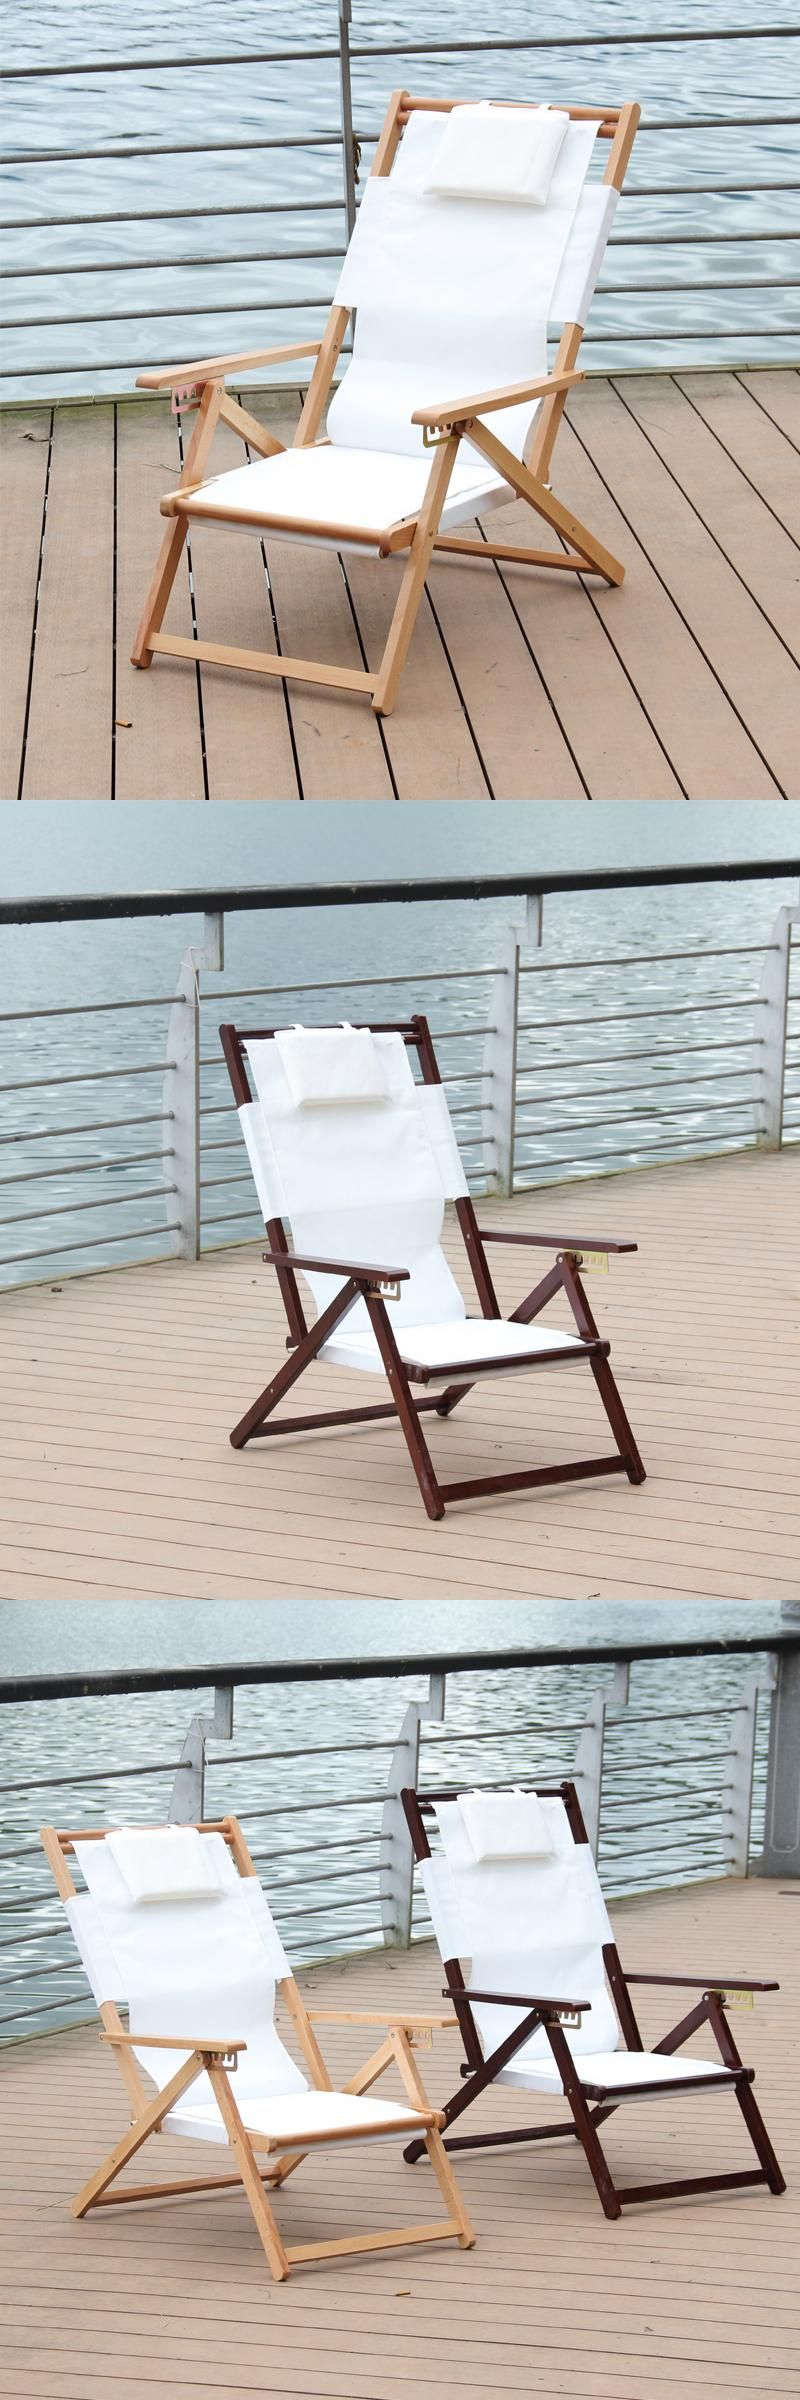 Adjustable and Foldable Reclining Beach Chair Chaise Lounger